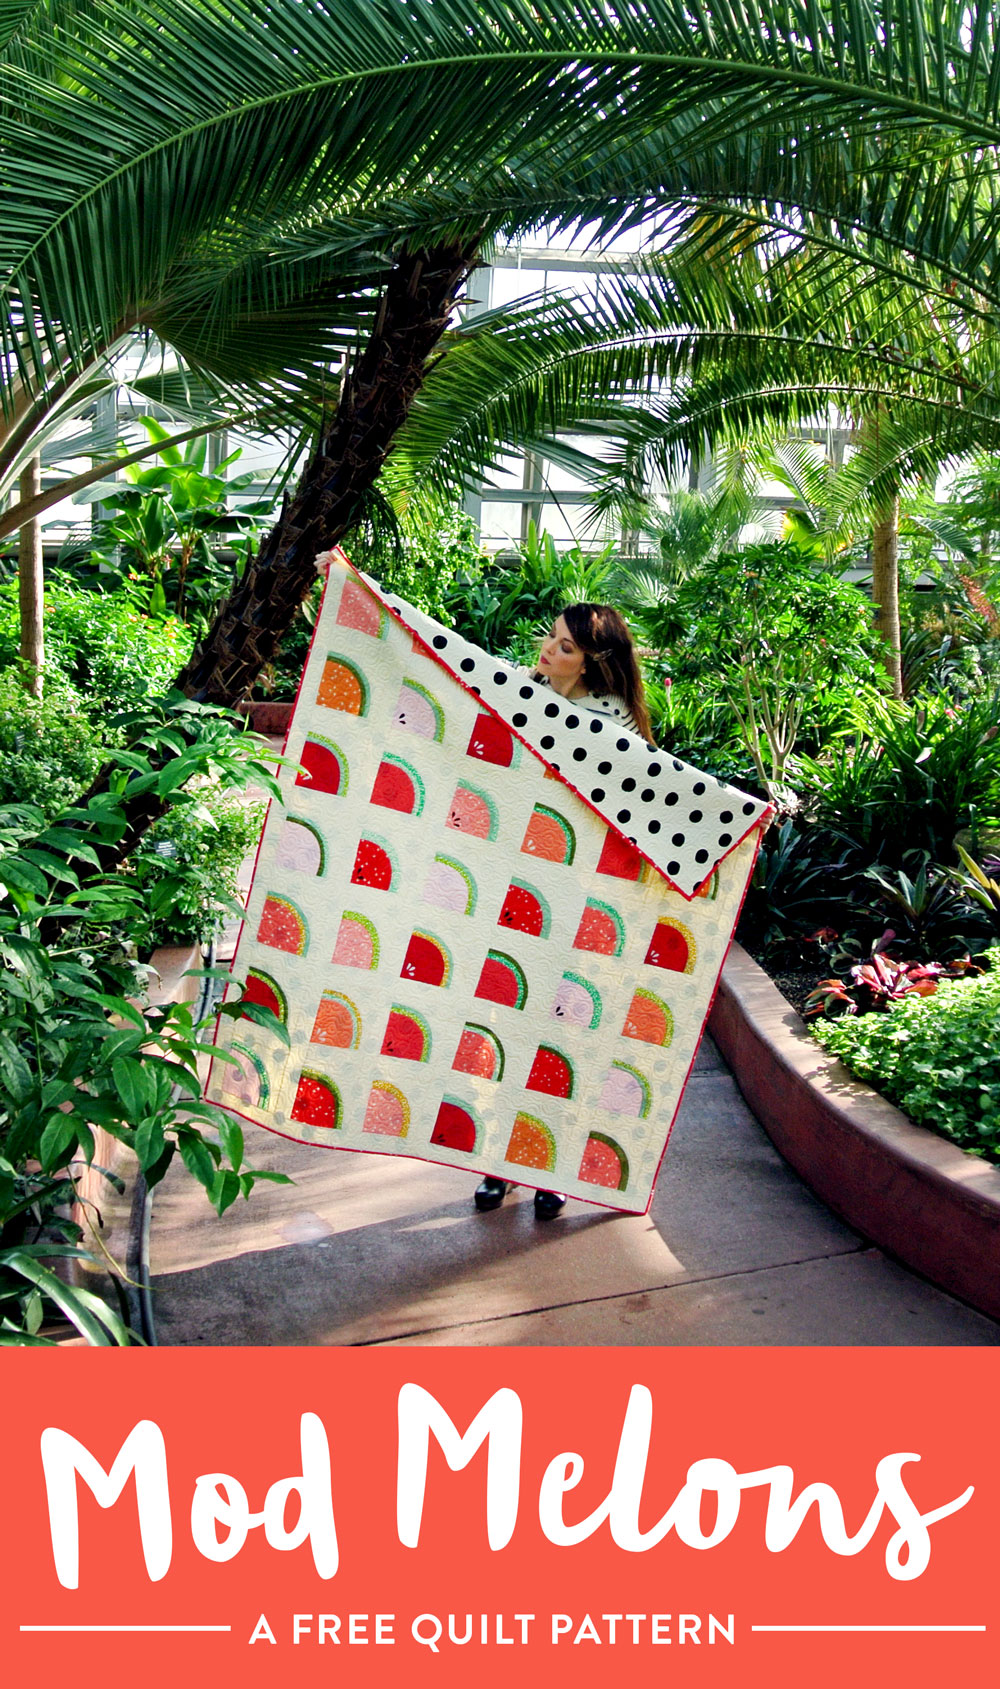 A FREE watermelon quilt pattern! Learn to sew curves with the Mod Melons quilt pattern by Suzy Quilts - https://suzyquilts.com/mod-melons-free-quilt-pattern/